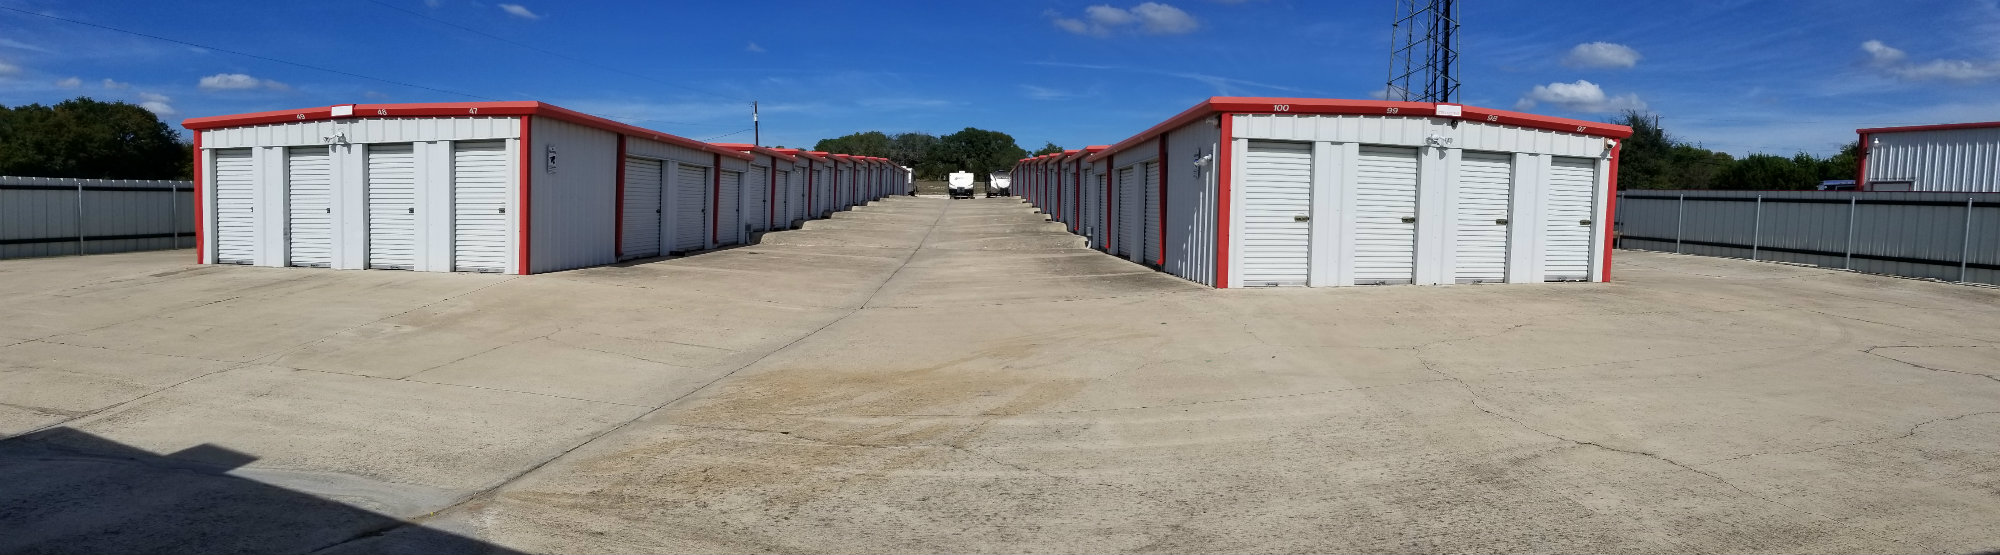 FM439 Self Storage